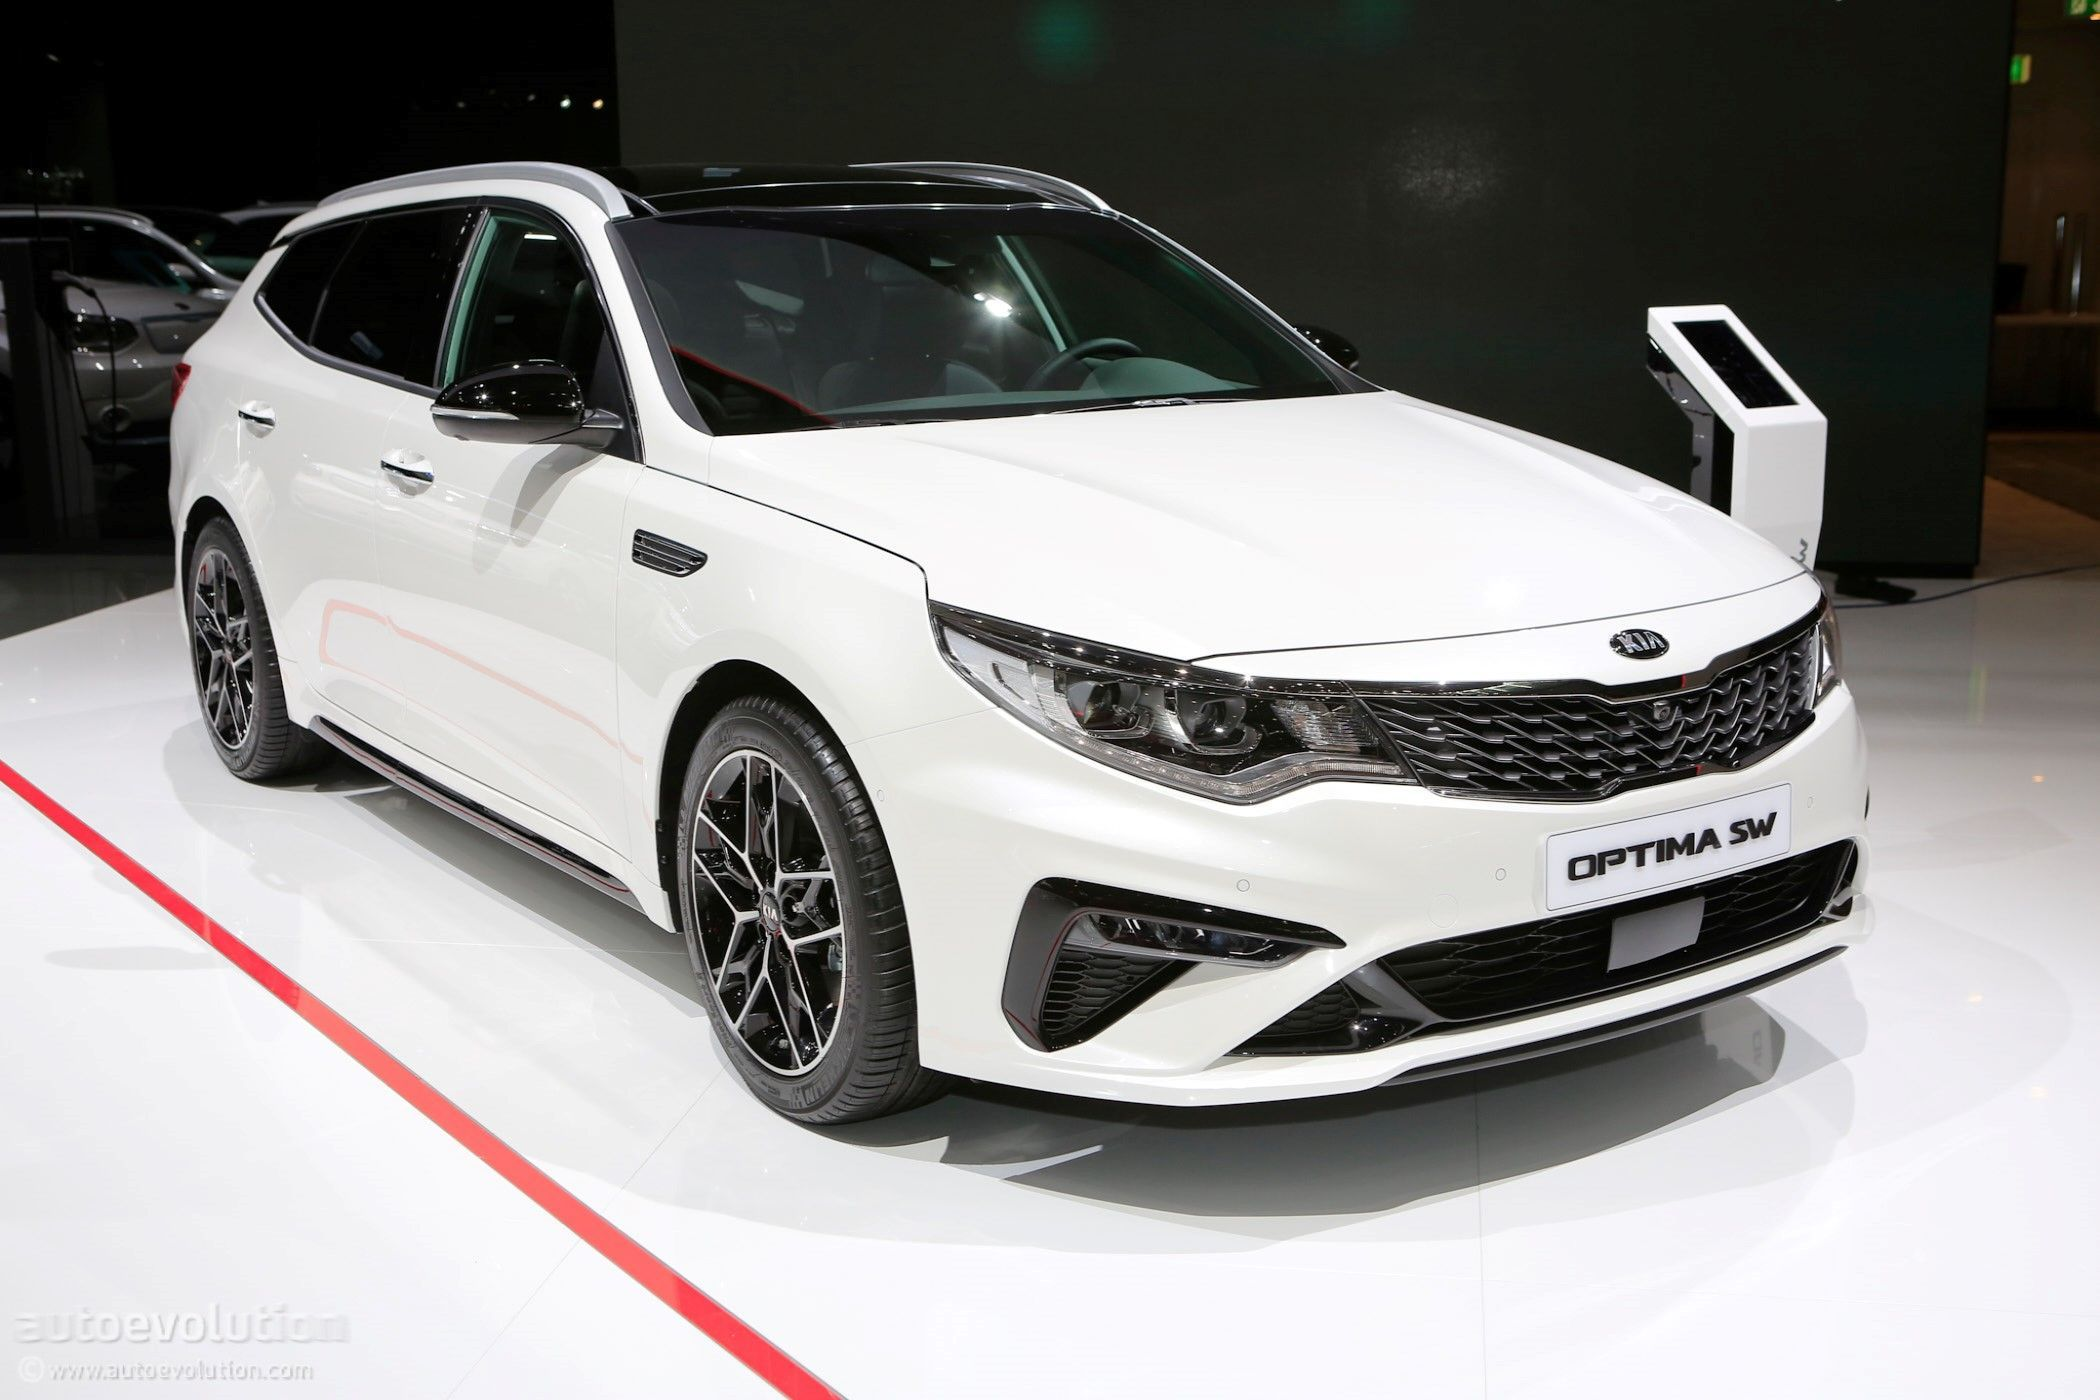 Kia Optima Gt 2020 New Concept Kia Optima Kia Picanto Kia Rio